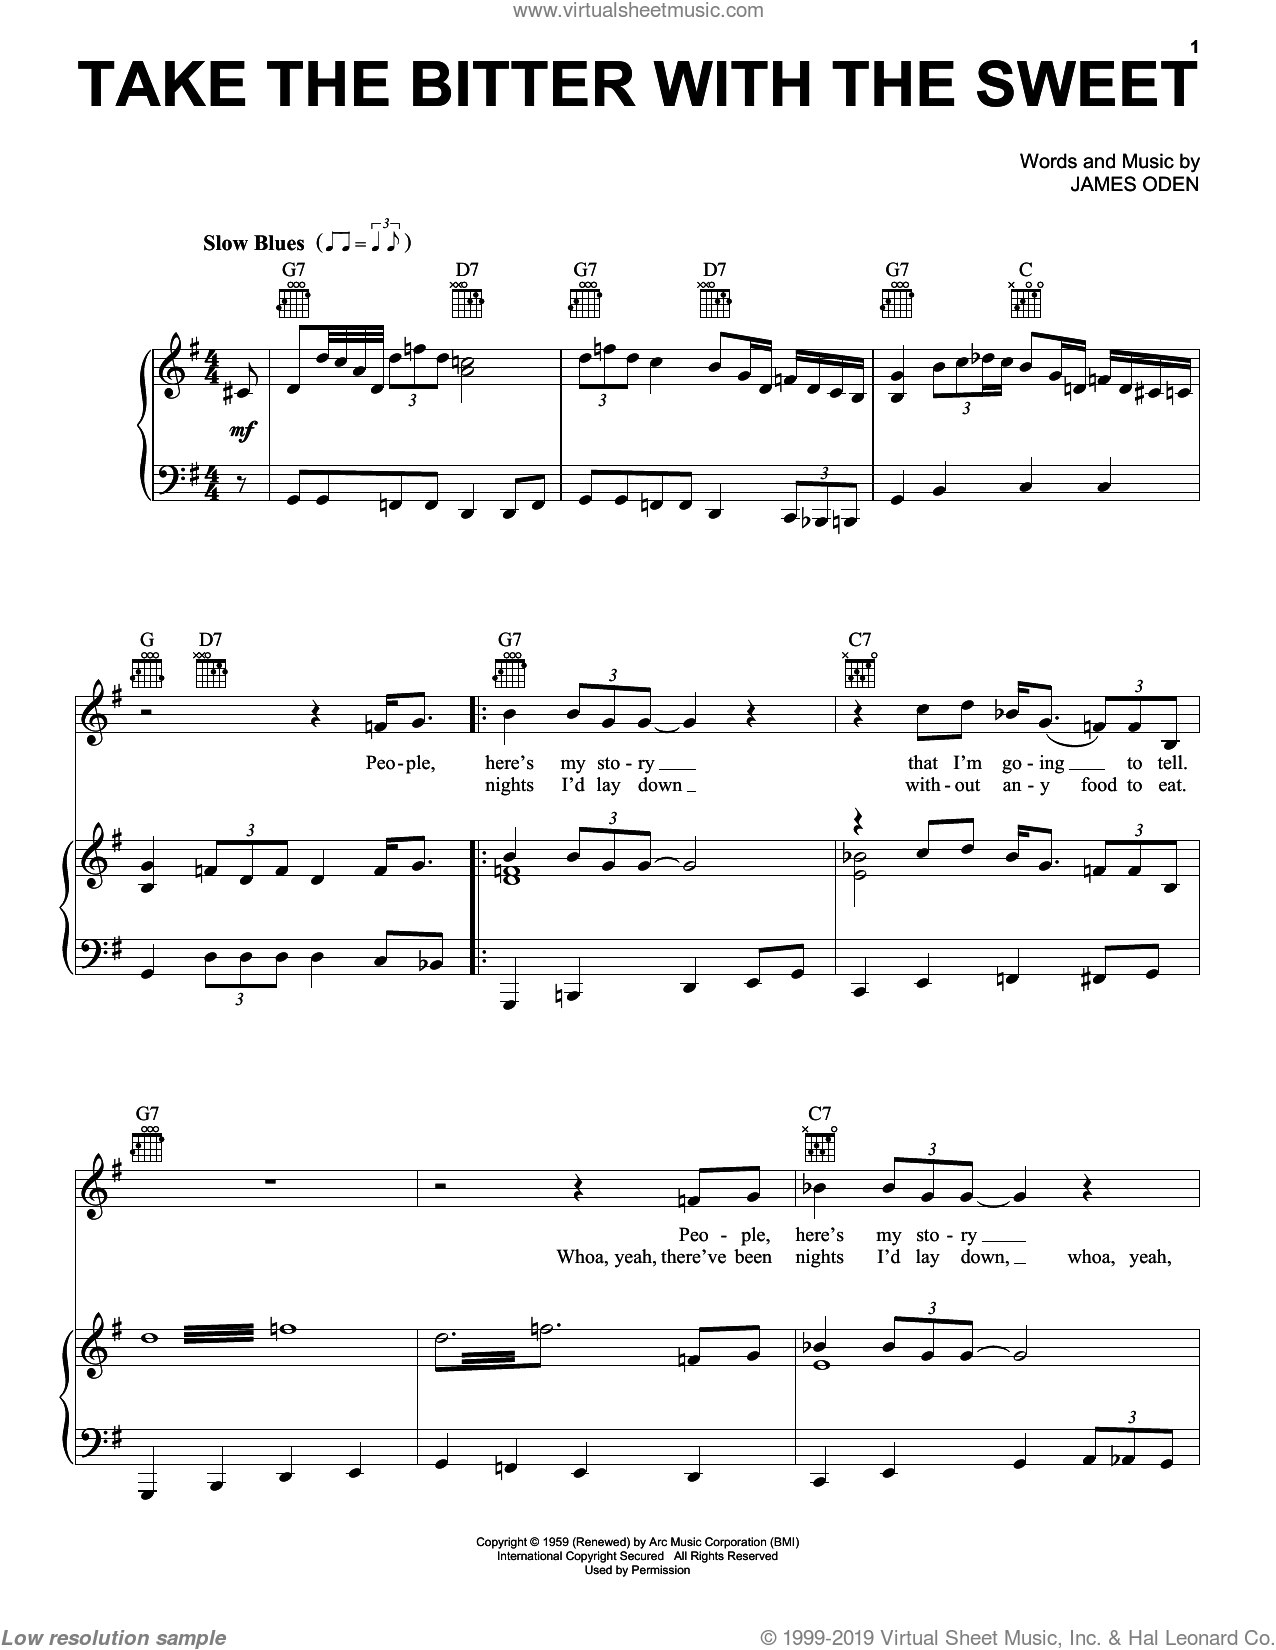 Take The Bitter With The Sweet sheet music for voice, piano or guitar by Muddy Waters and James Oden, intermediate skill level